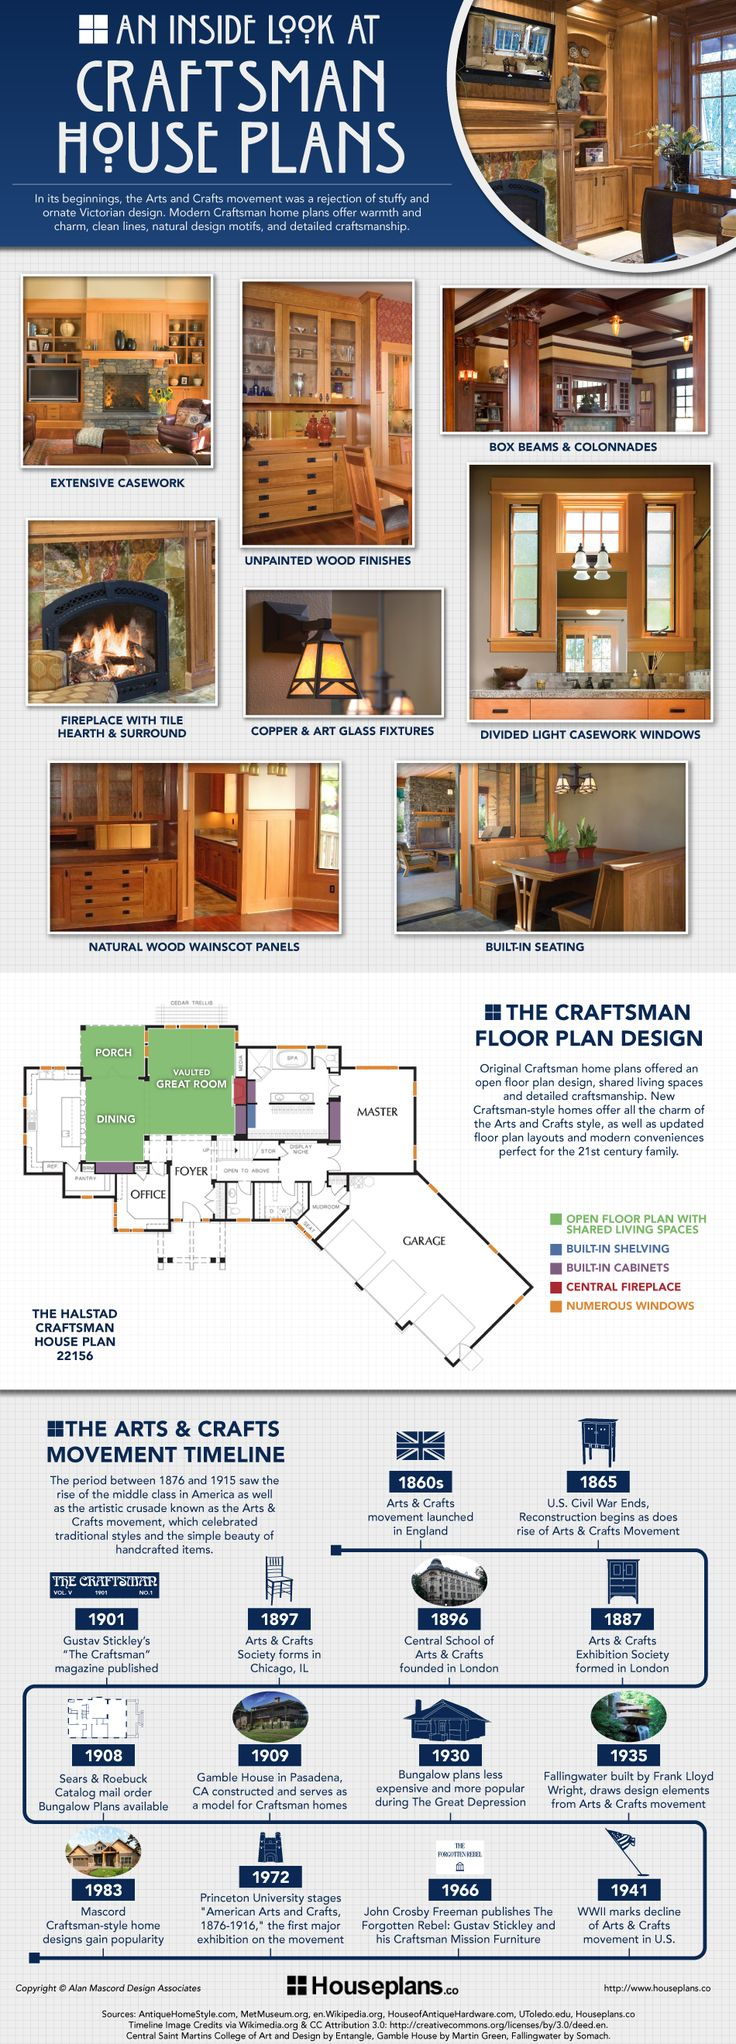 926 best craftsman style images on pinterest craftsman bungalows